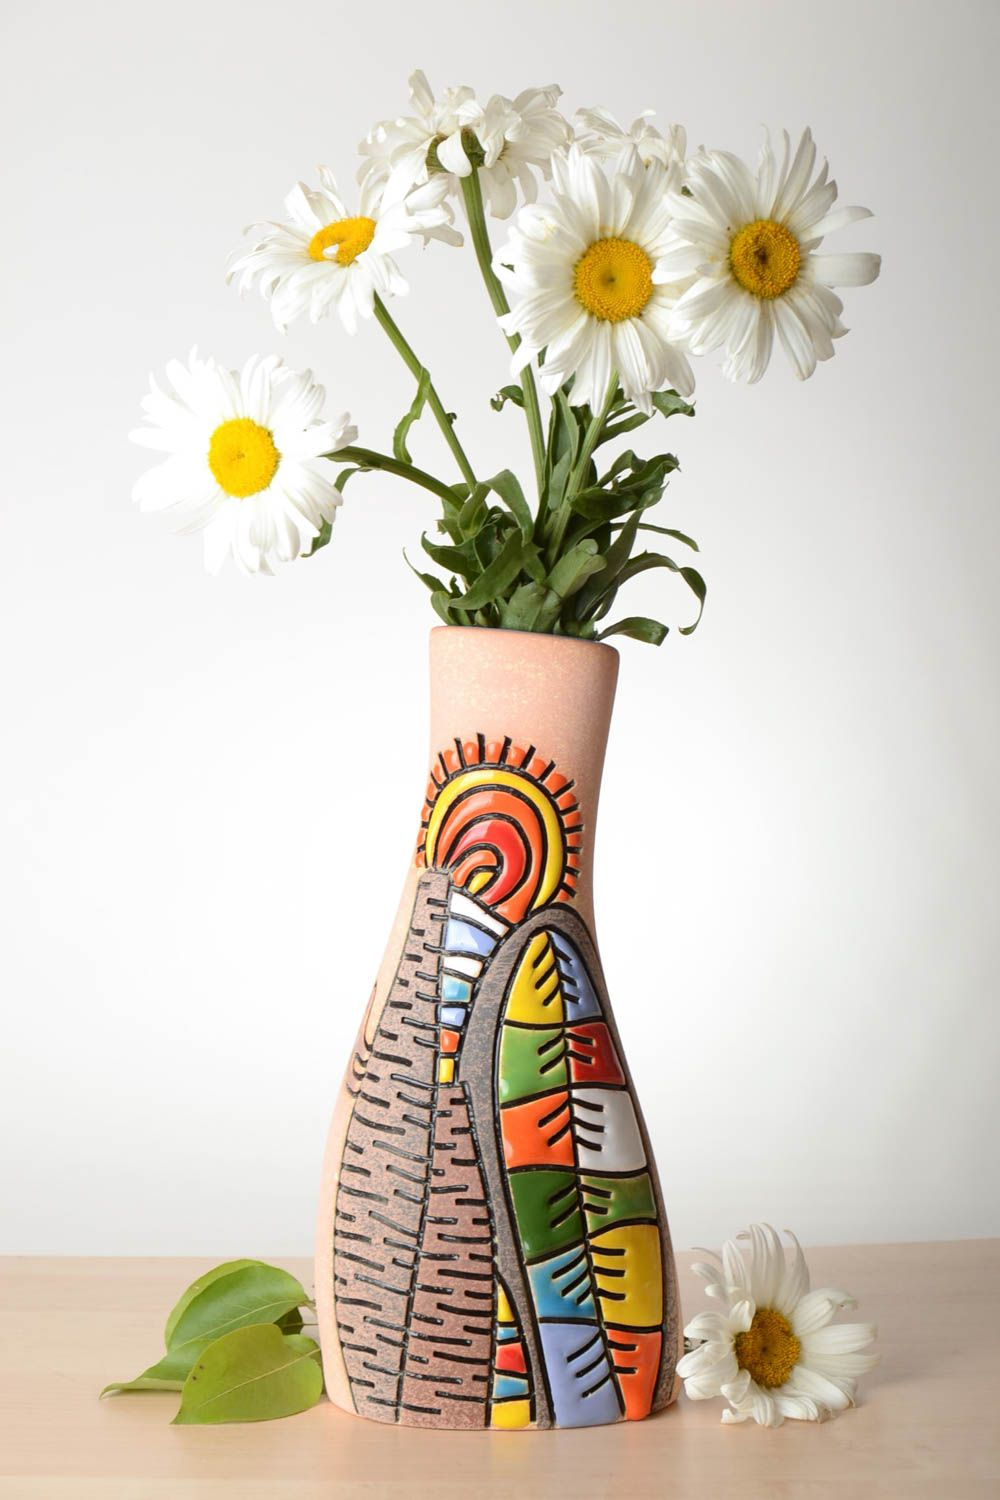 vases beautiful handmade ceramic vase homemade clay vase flower vase design gift ideas madeheart - Vase Design Ideas